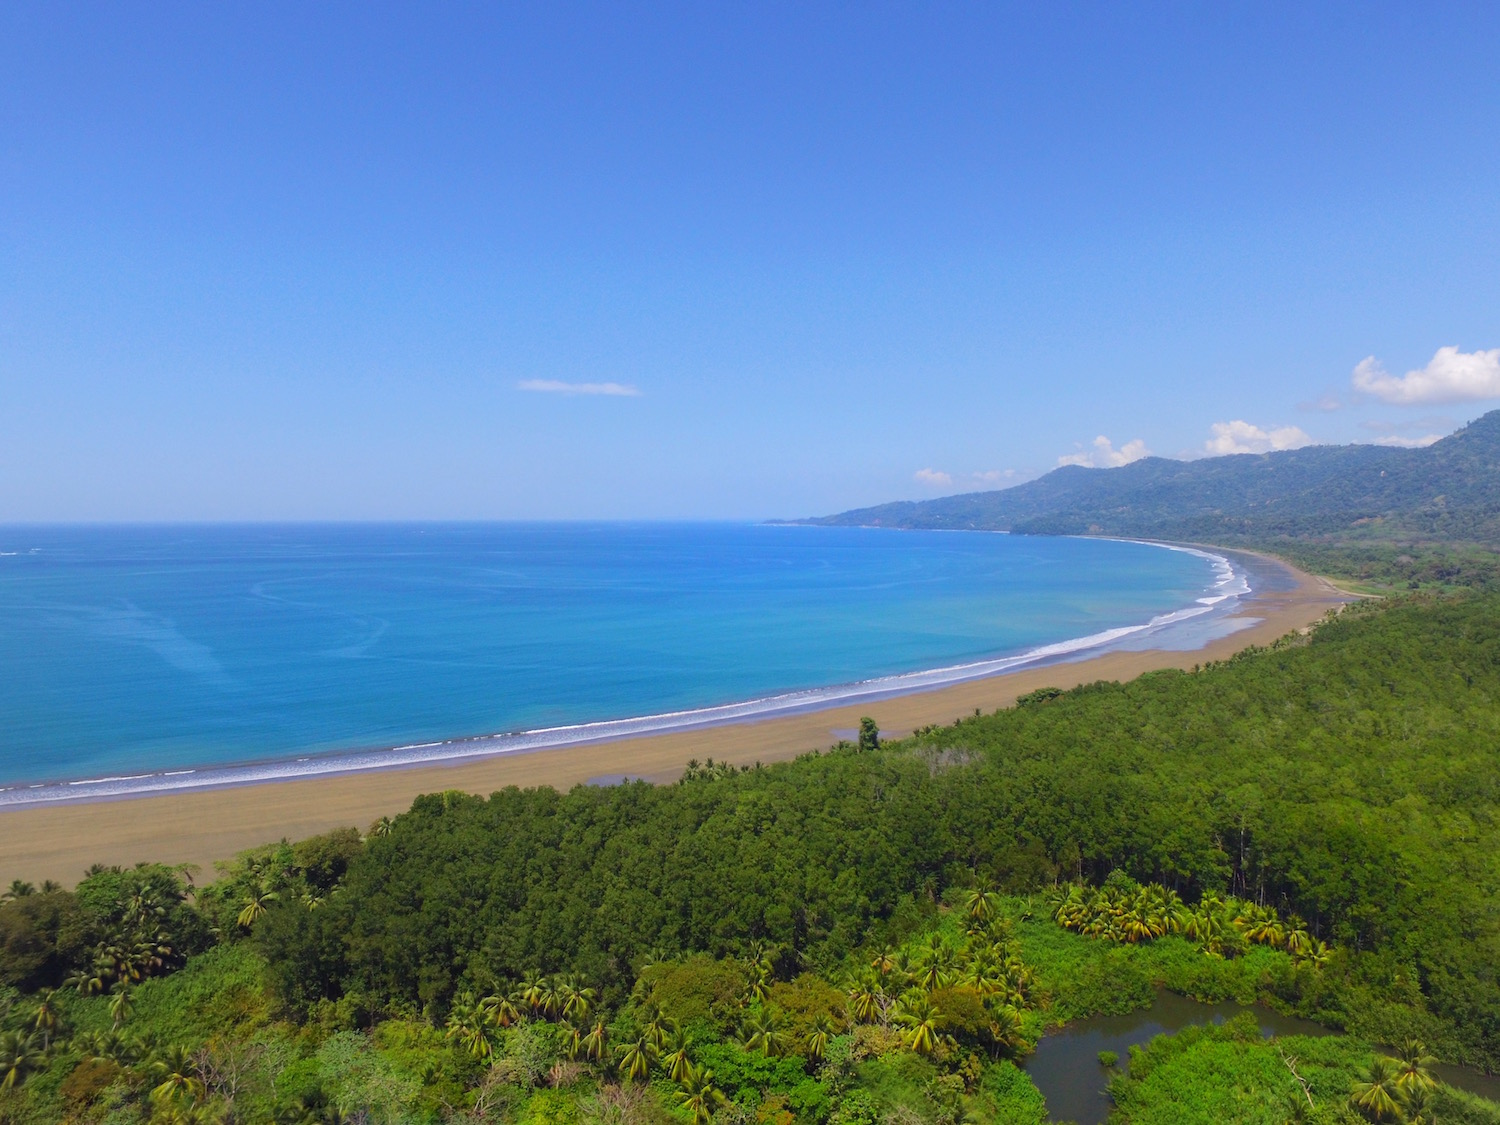 Beautiful coastline and beaches of Dominical and Uvita Costa Rica